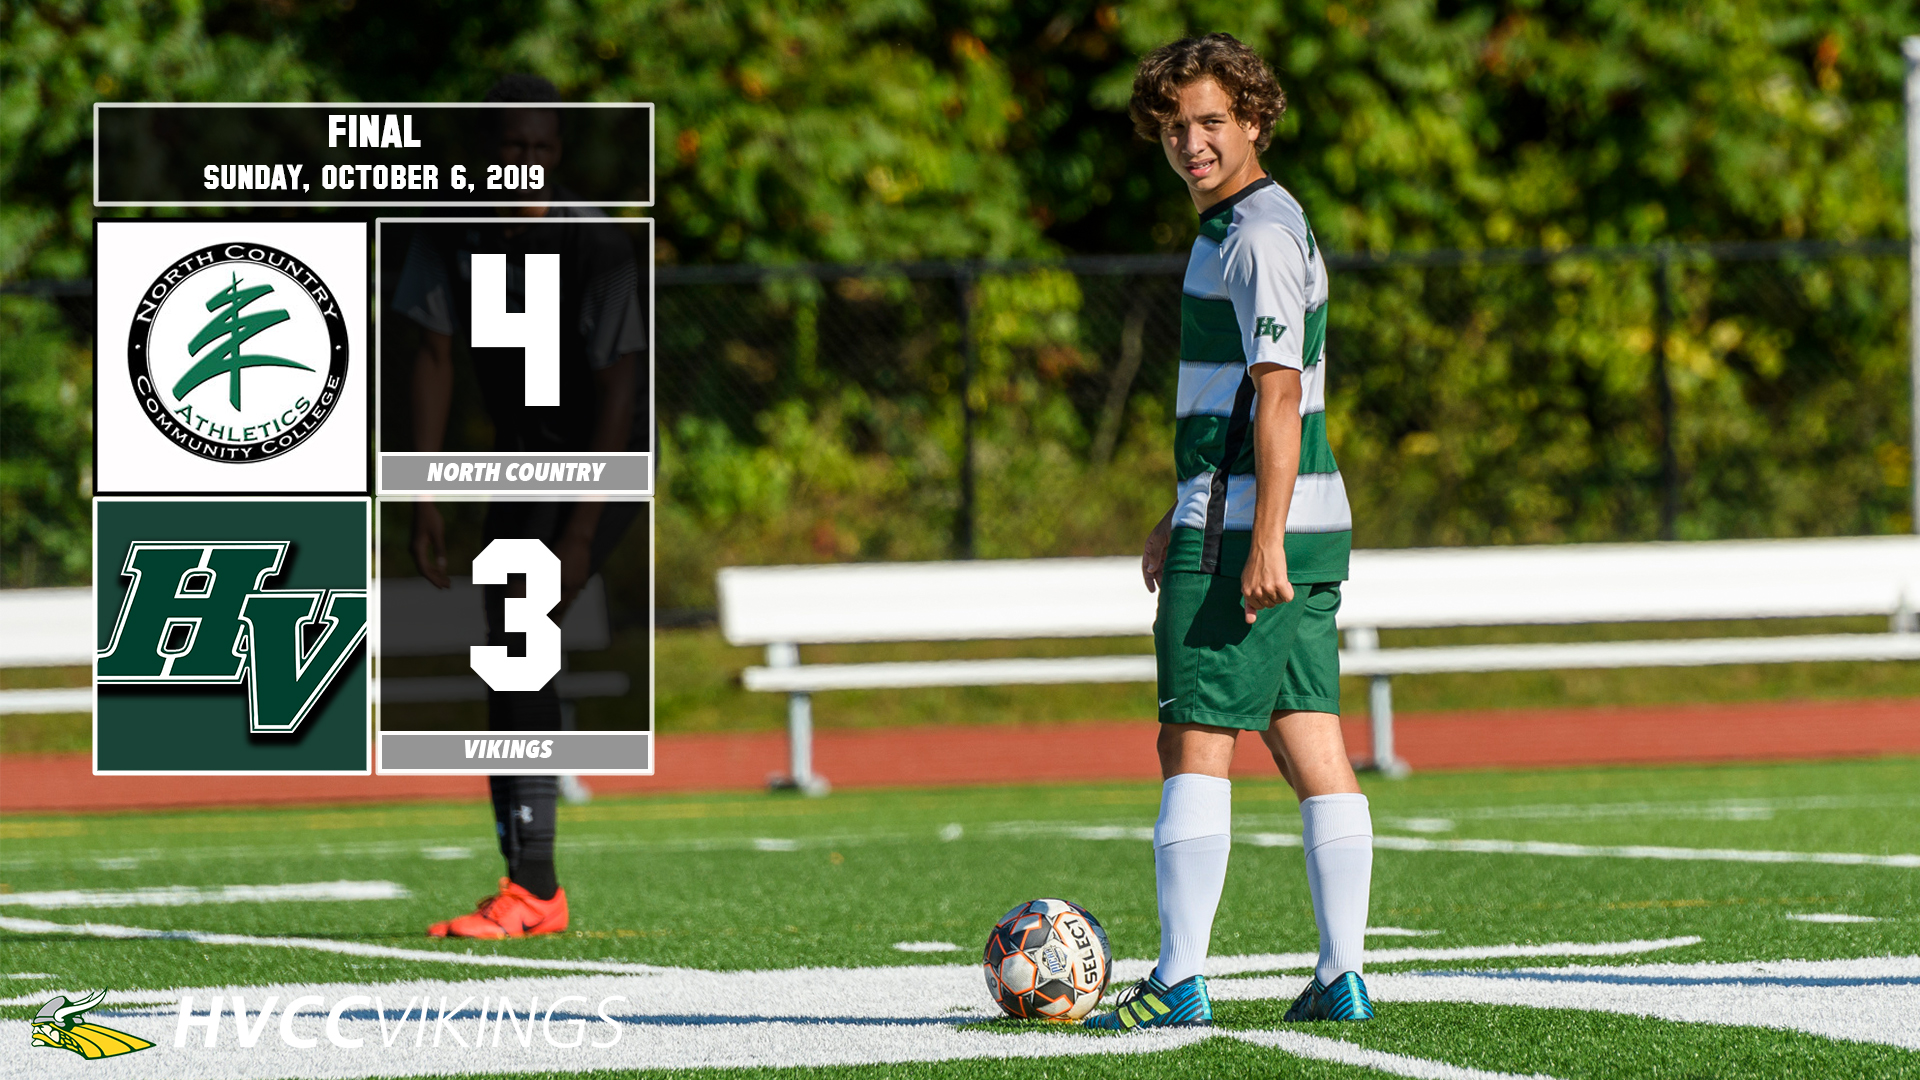 North Country defeated the Vikings men's soccer team 4-3 on Oct. 6, 2019.